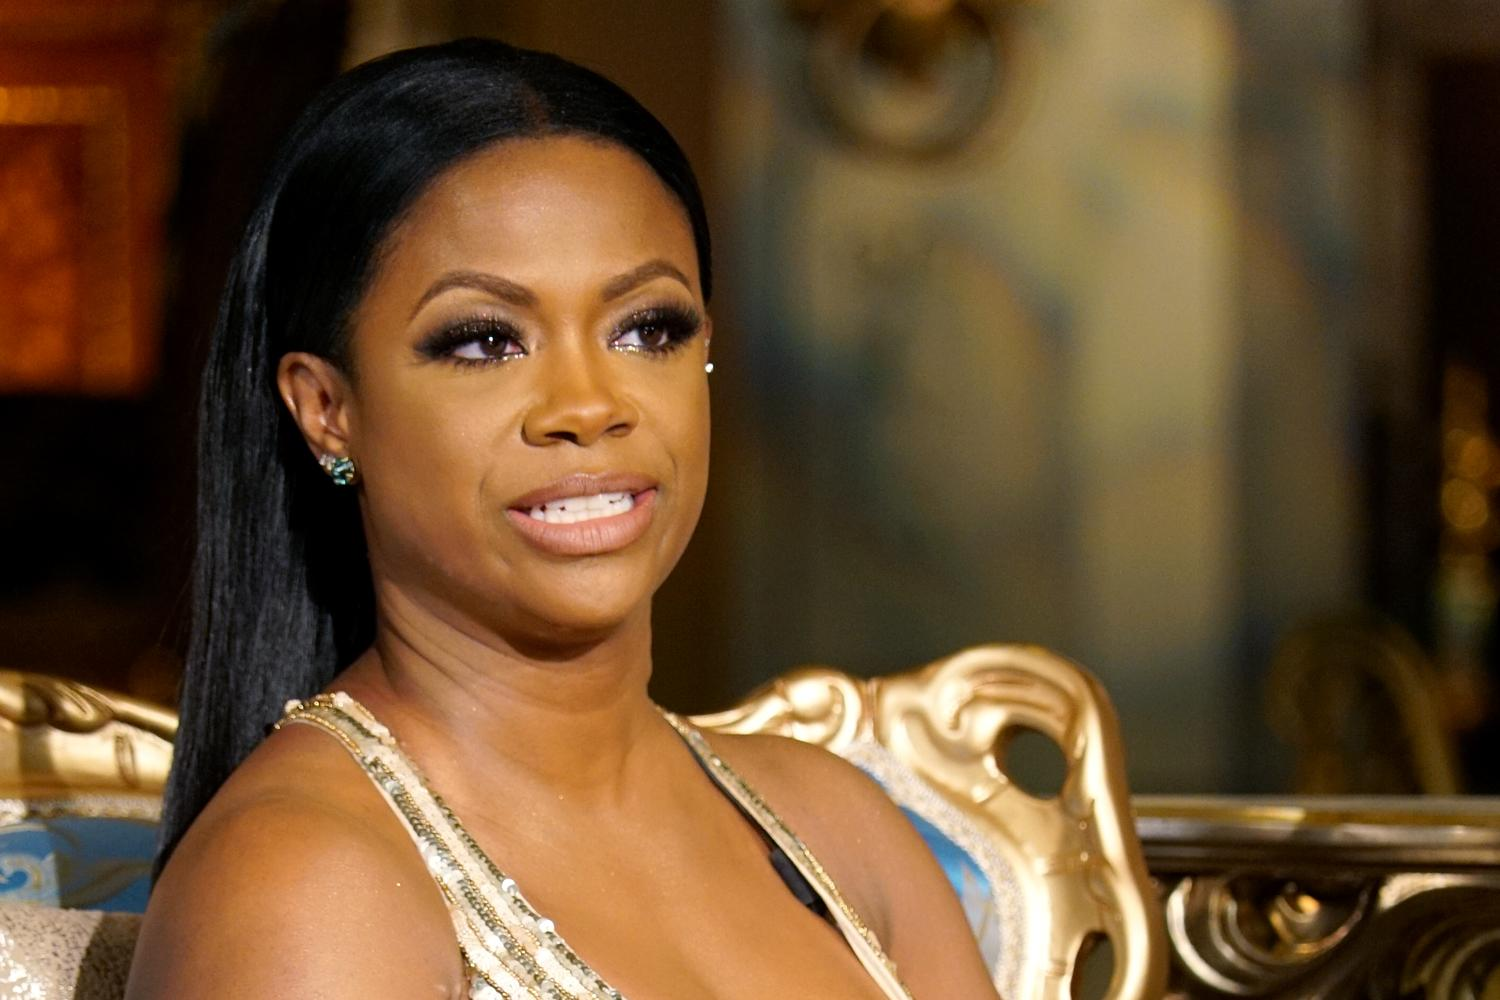 Kandi Burruss May Make New Music -- Some Fans Are Conflicted While Others Think She Is On The Masked Singer